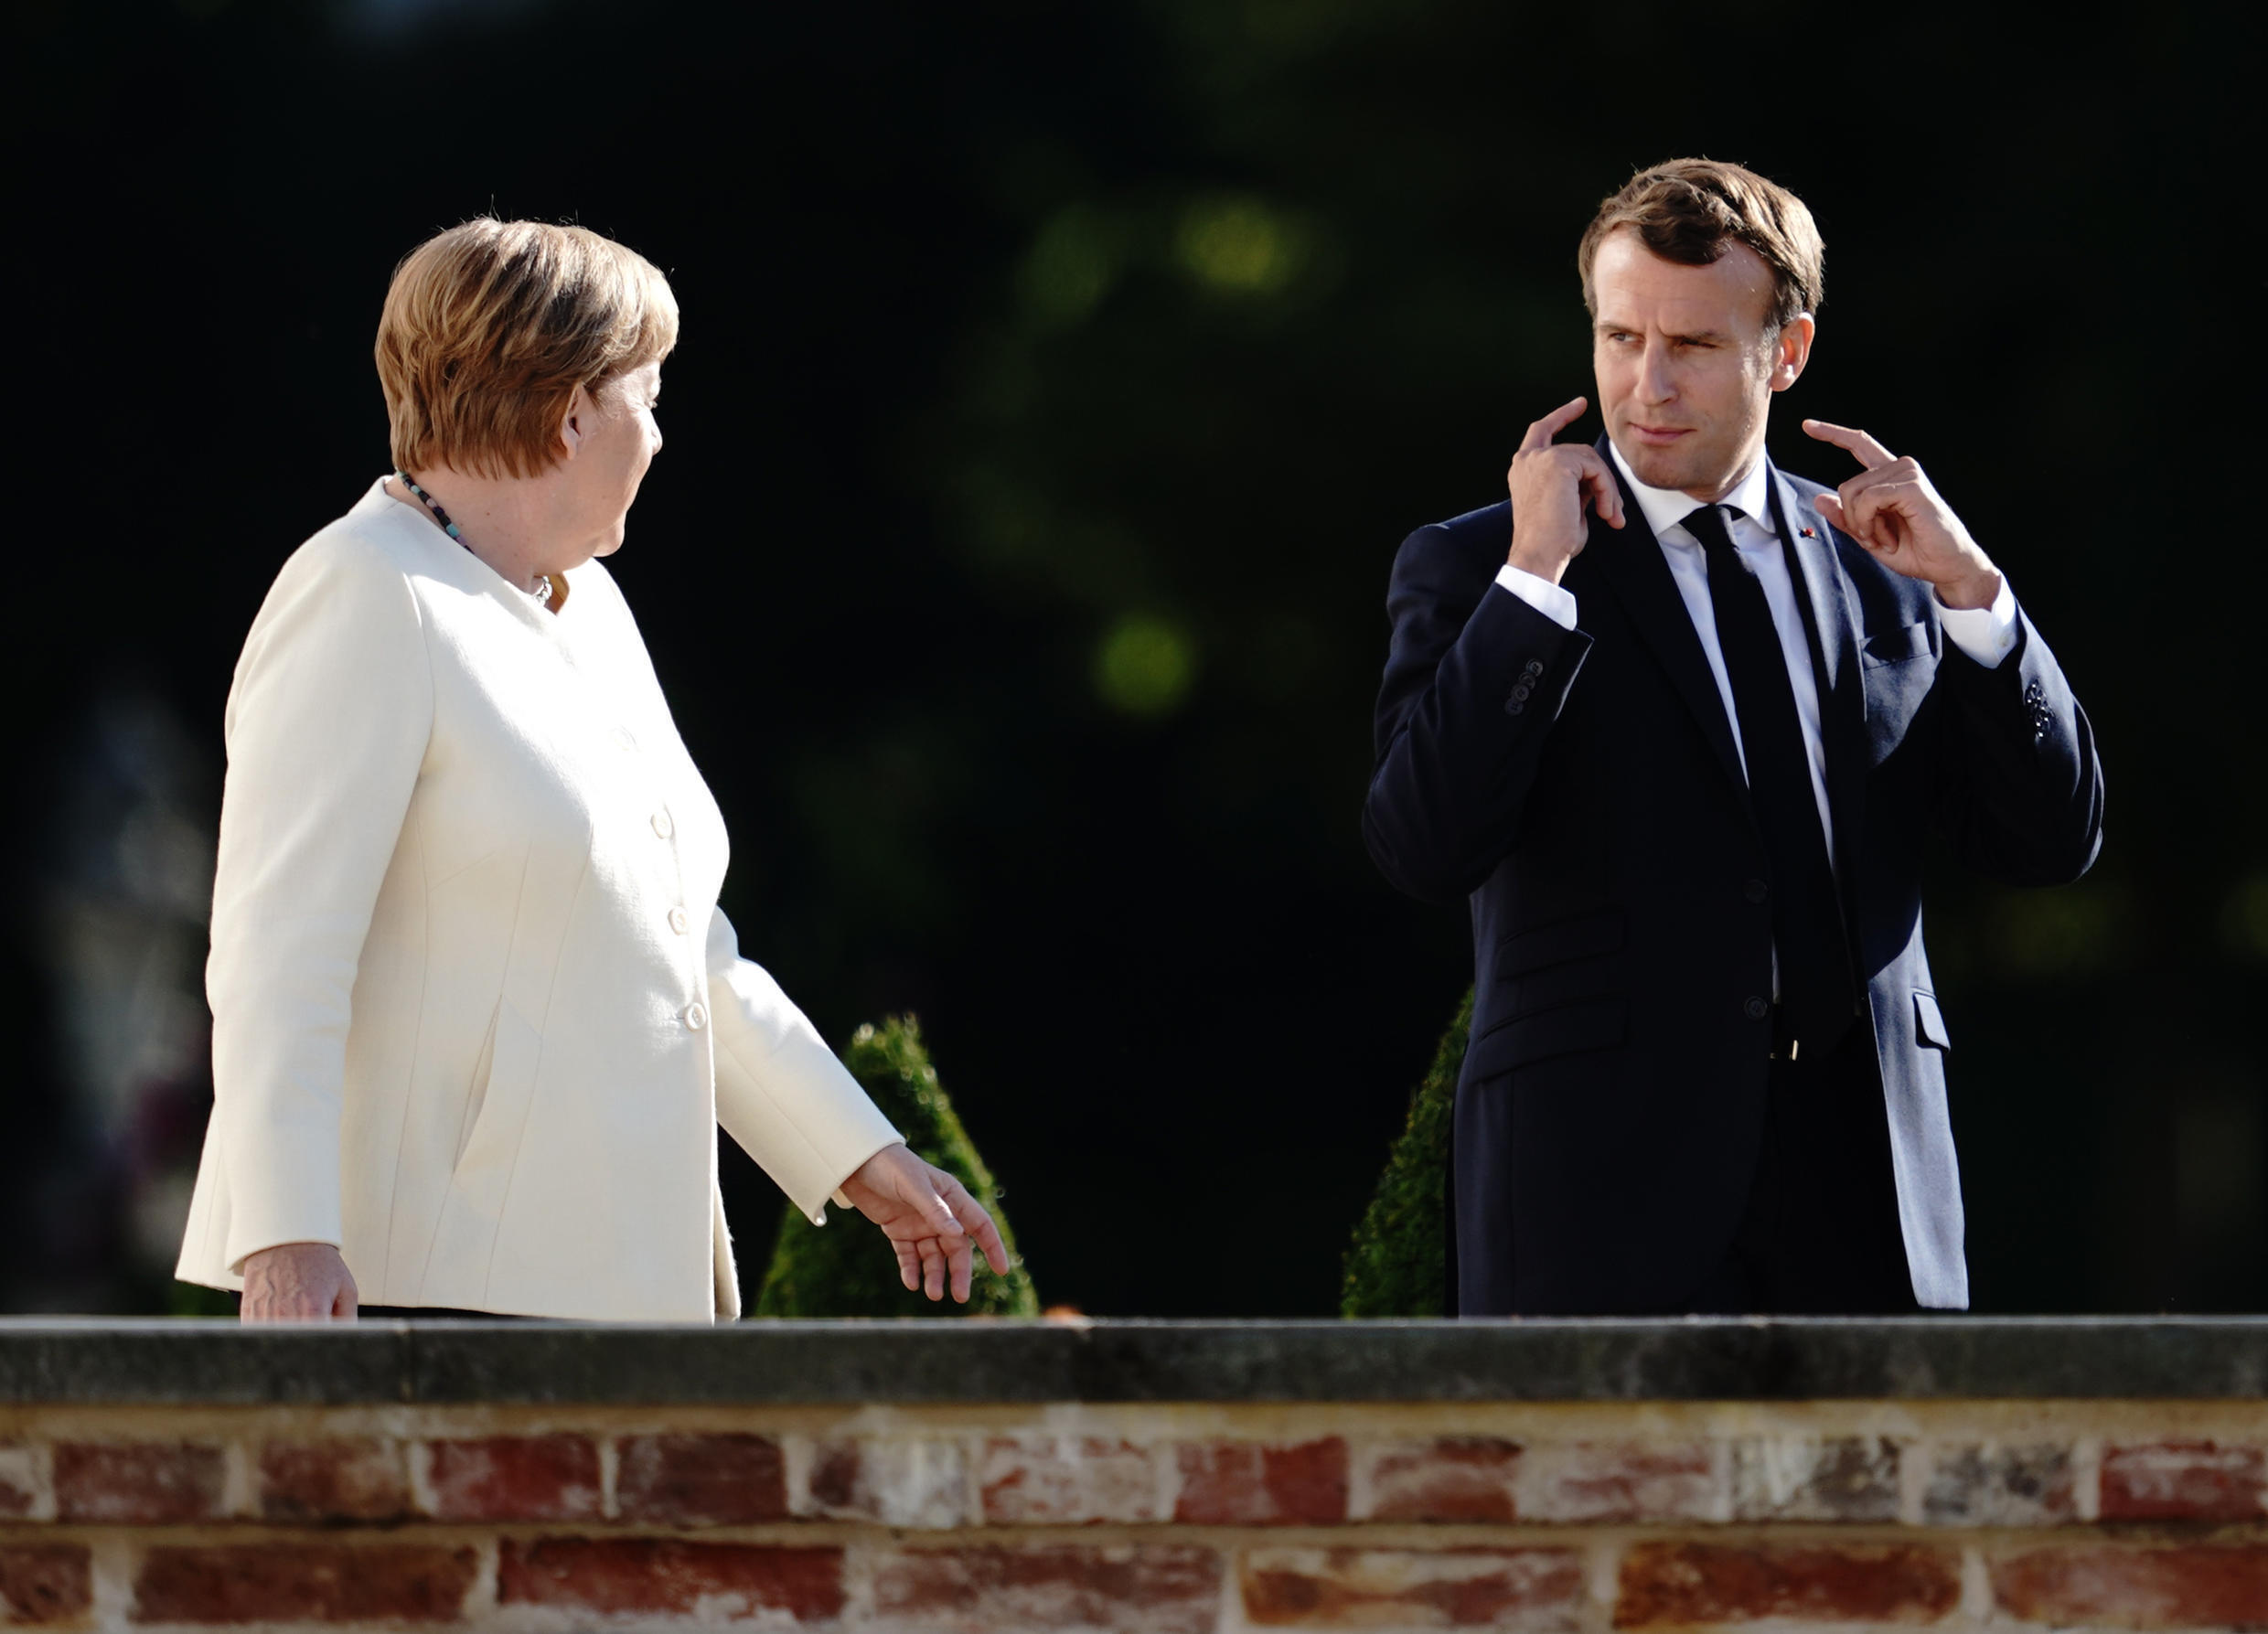 German Chancellor Angela Merkel and French President Emmanuel Macron arrive to give a press conference following a meeting on 29 June 2020 in Meseberg.